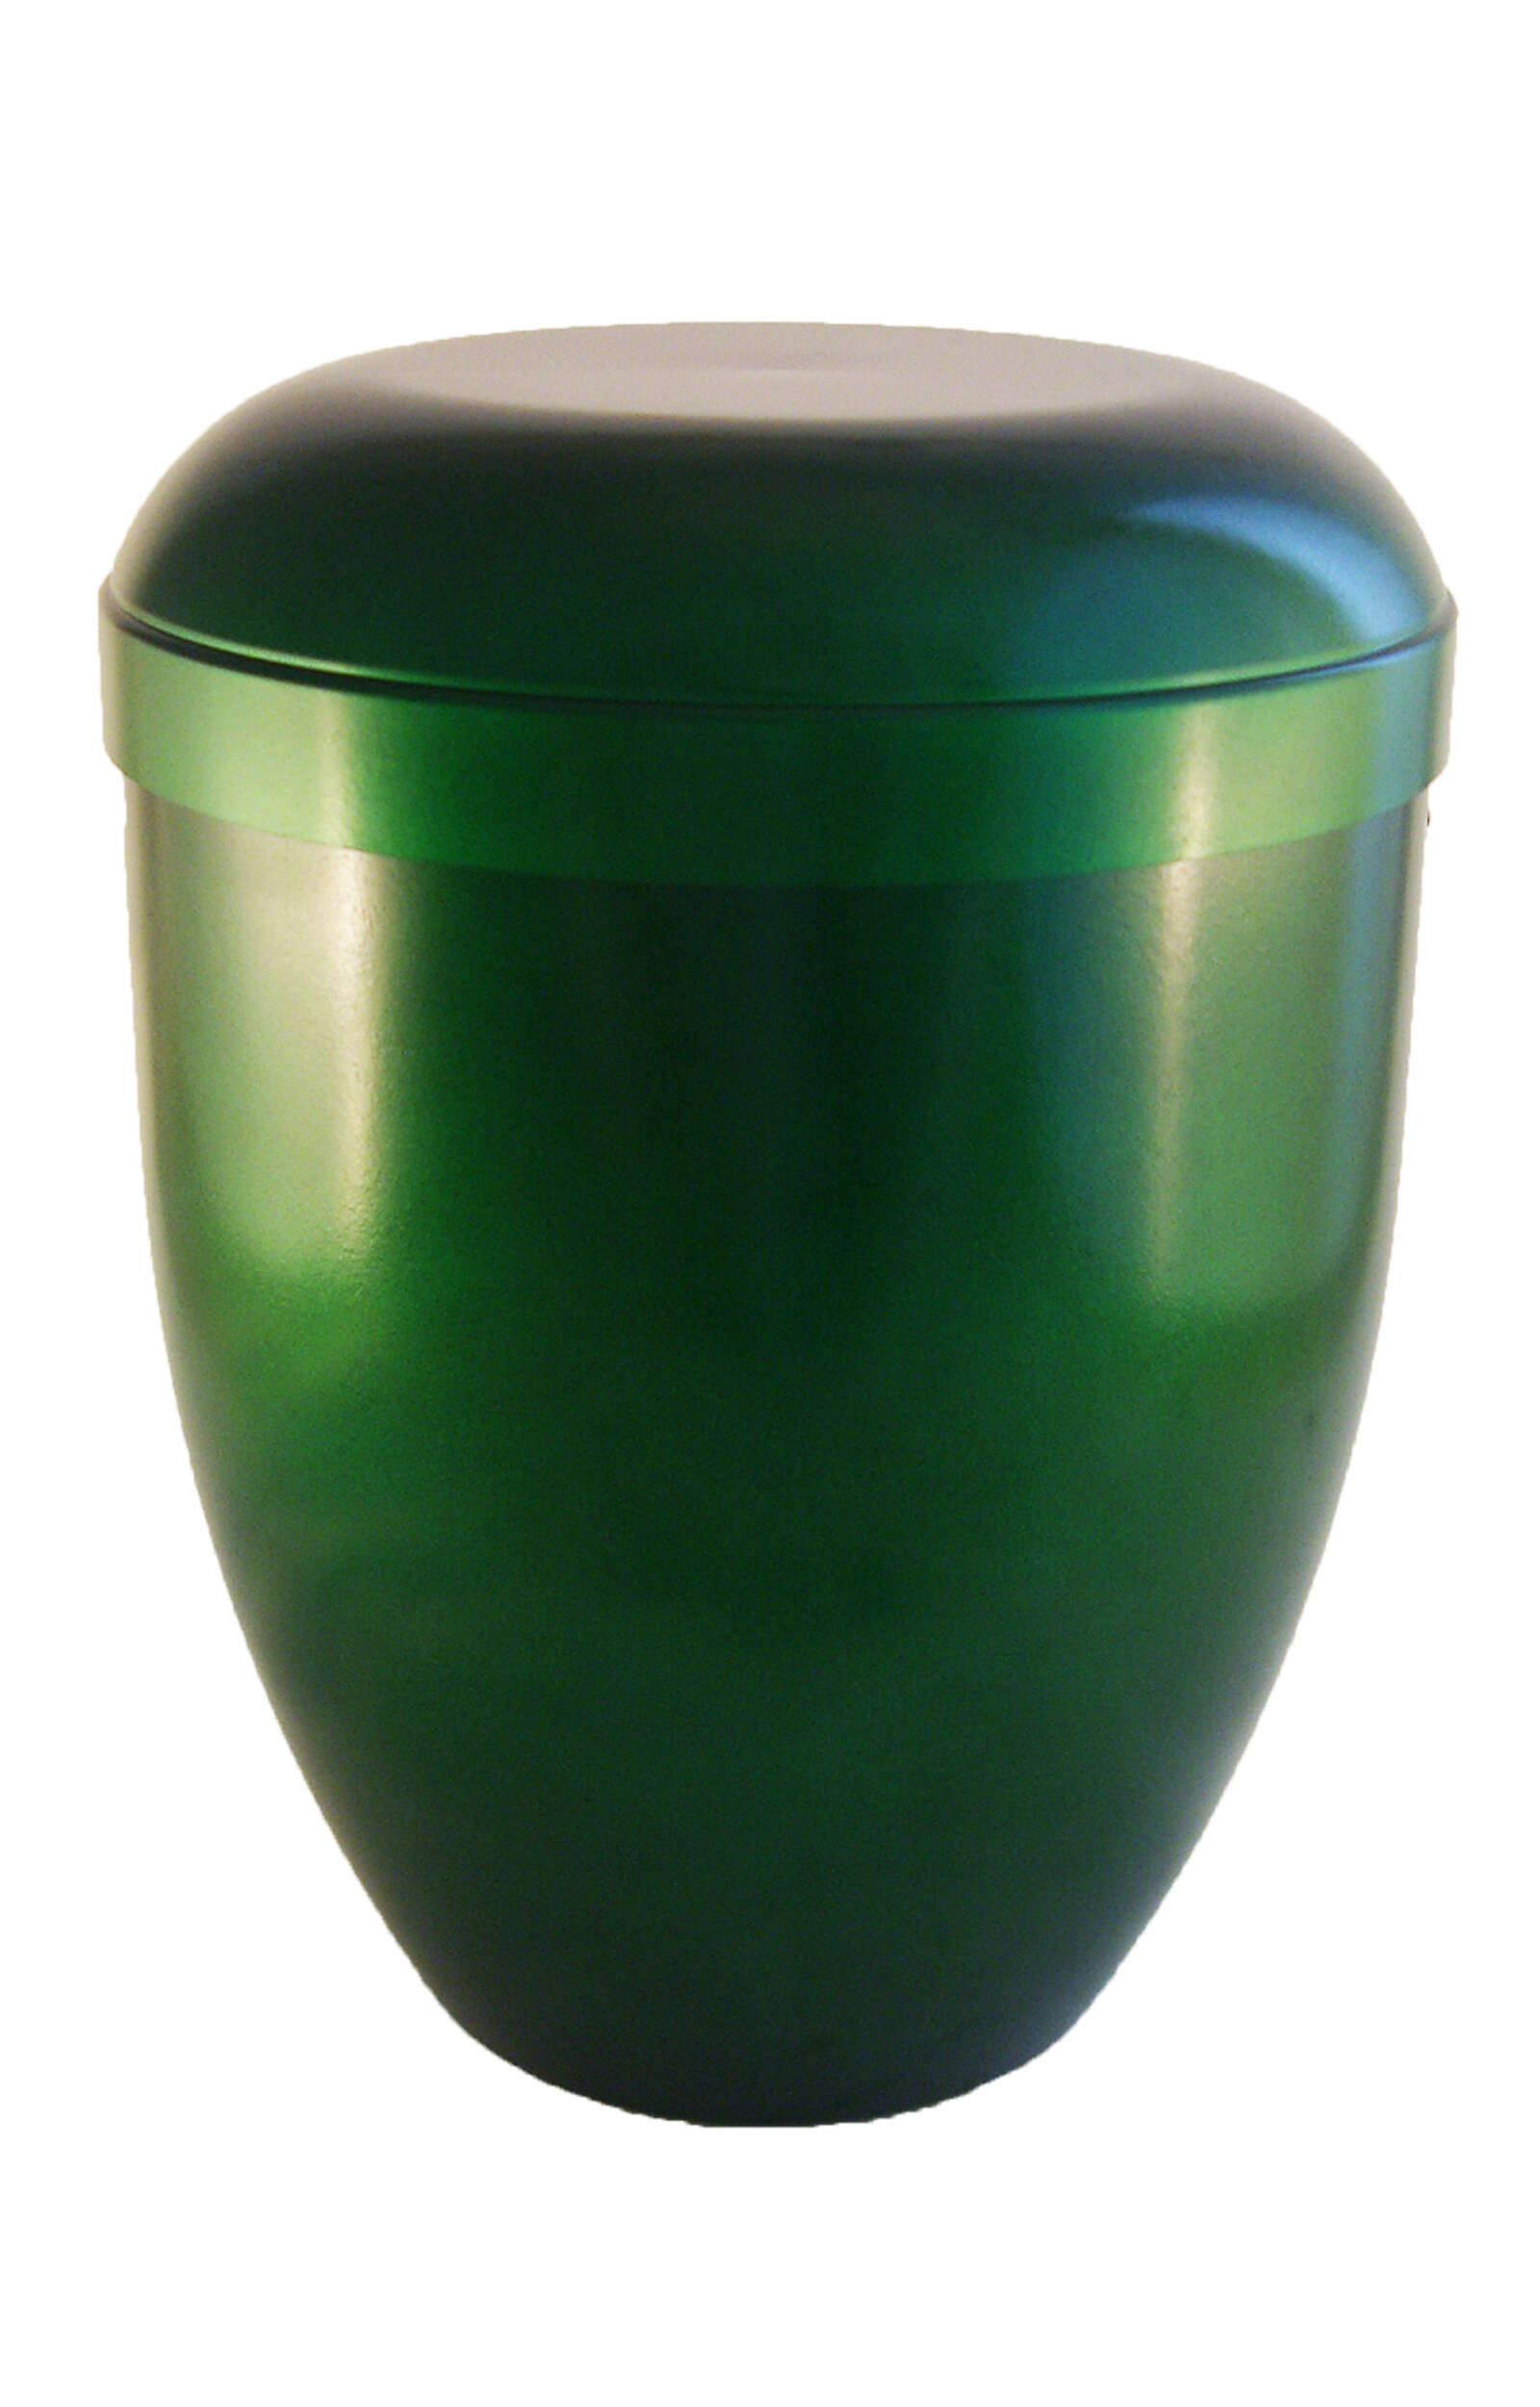 en BGG3643 biodigradable green funeral urn for human ashes